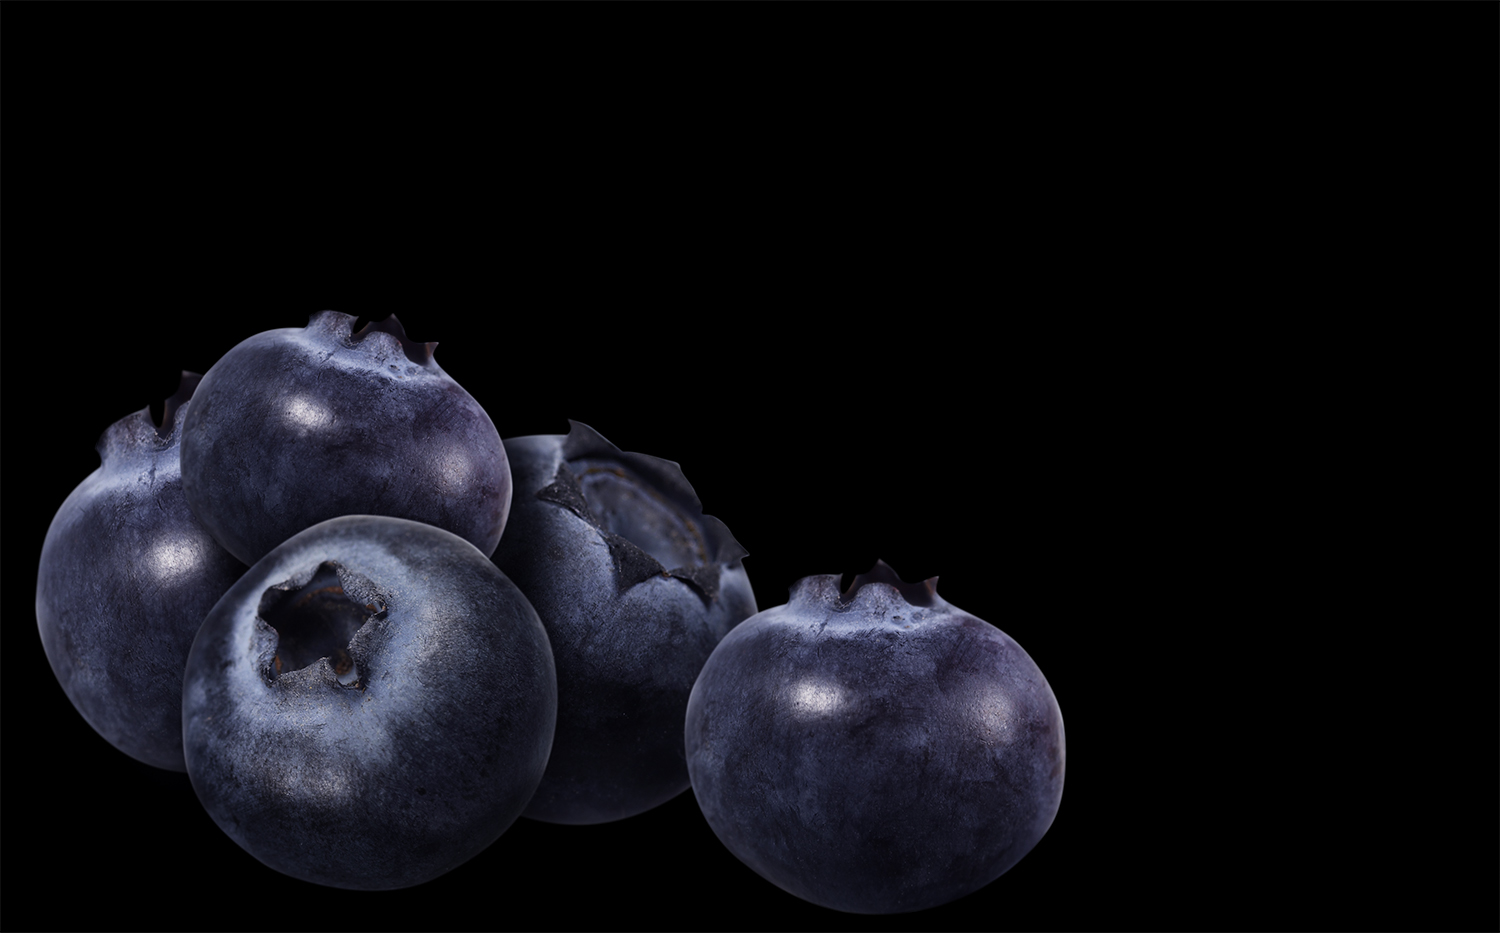 5_Blueberries.jpg